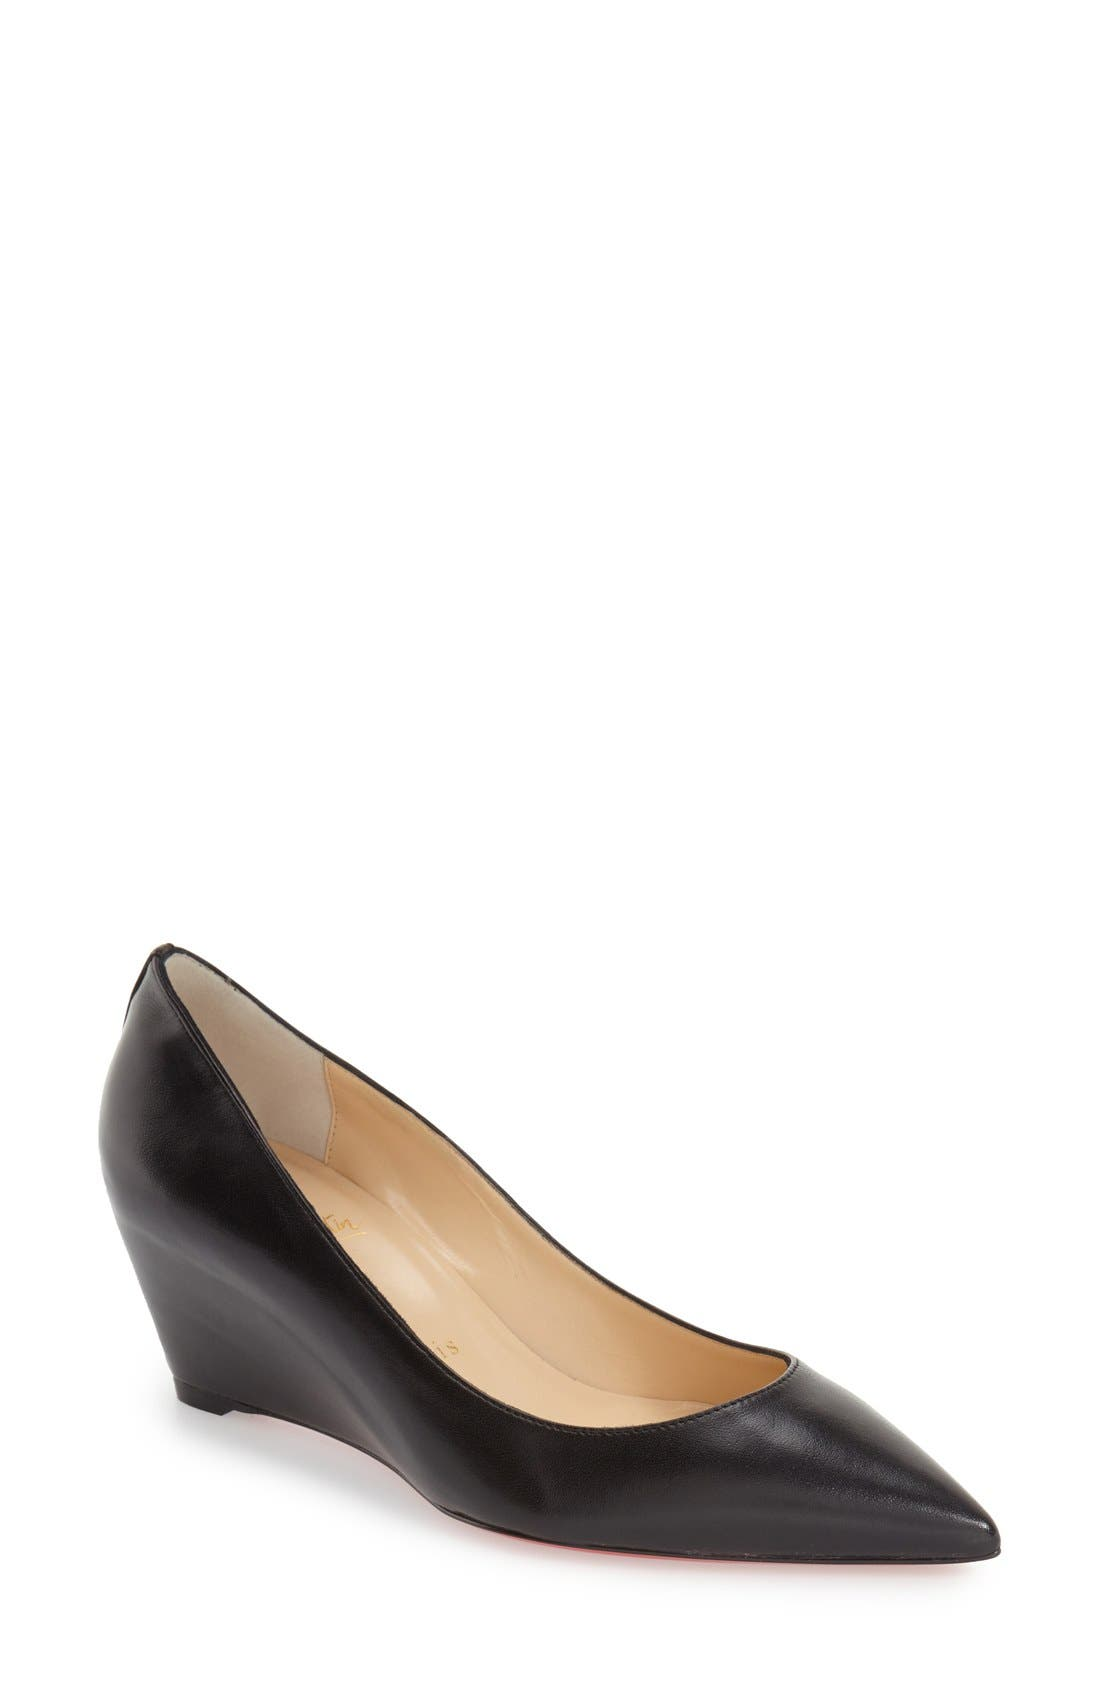 Alternate Image 1 Selected - Christian Louboutin 'Pipina' Pointy Toe Wedge Pump